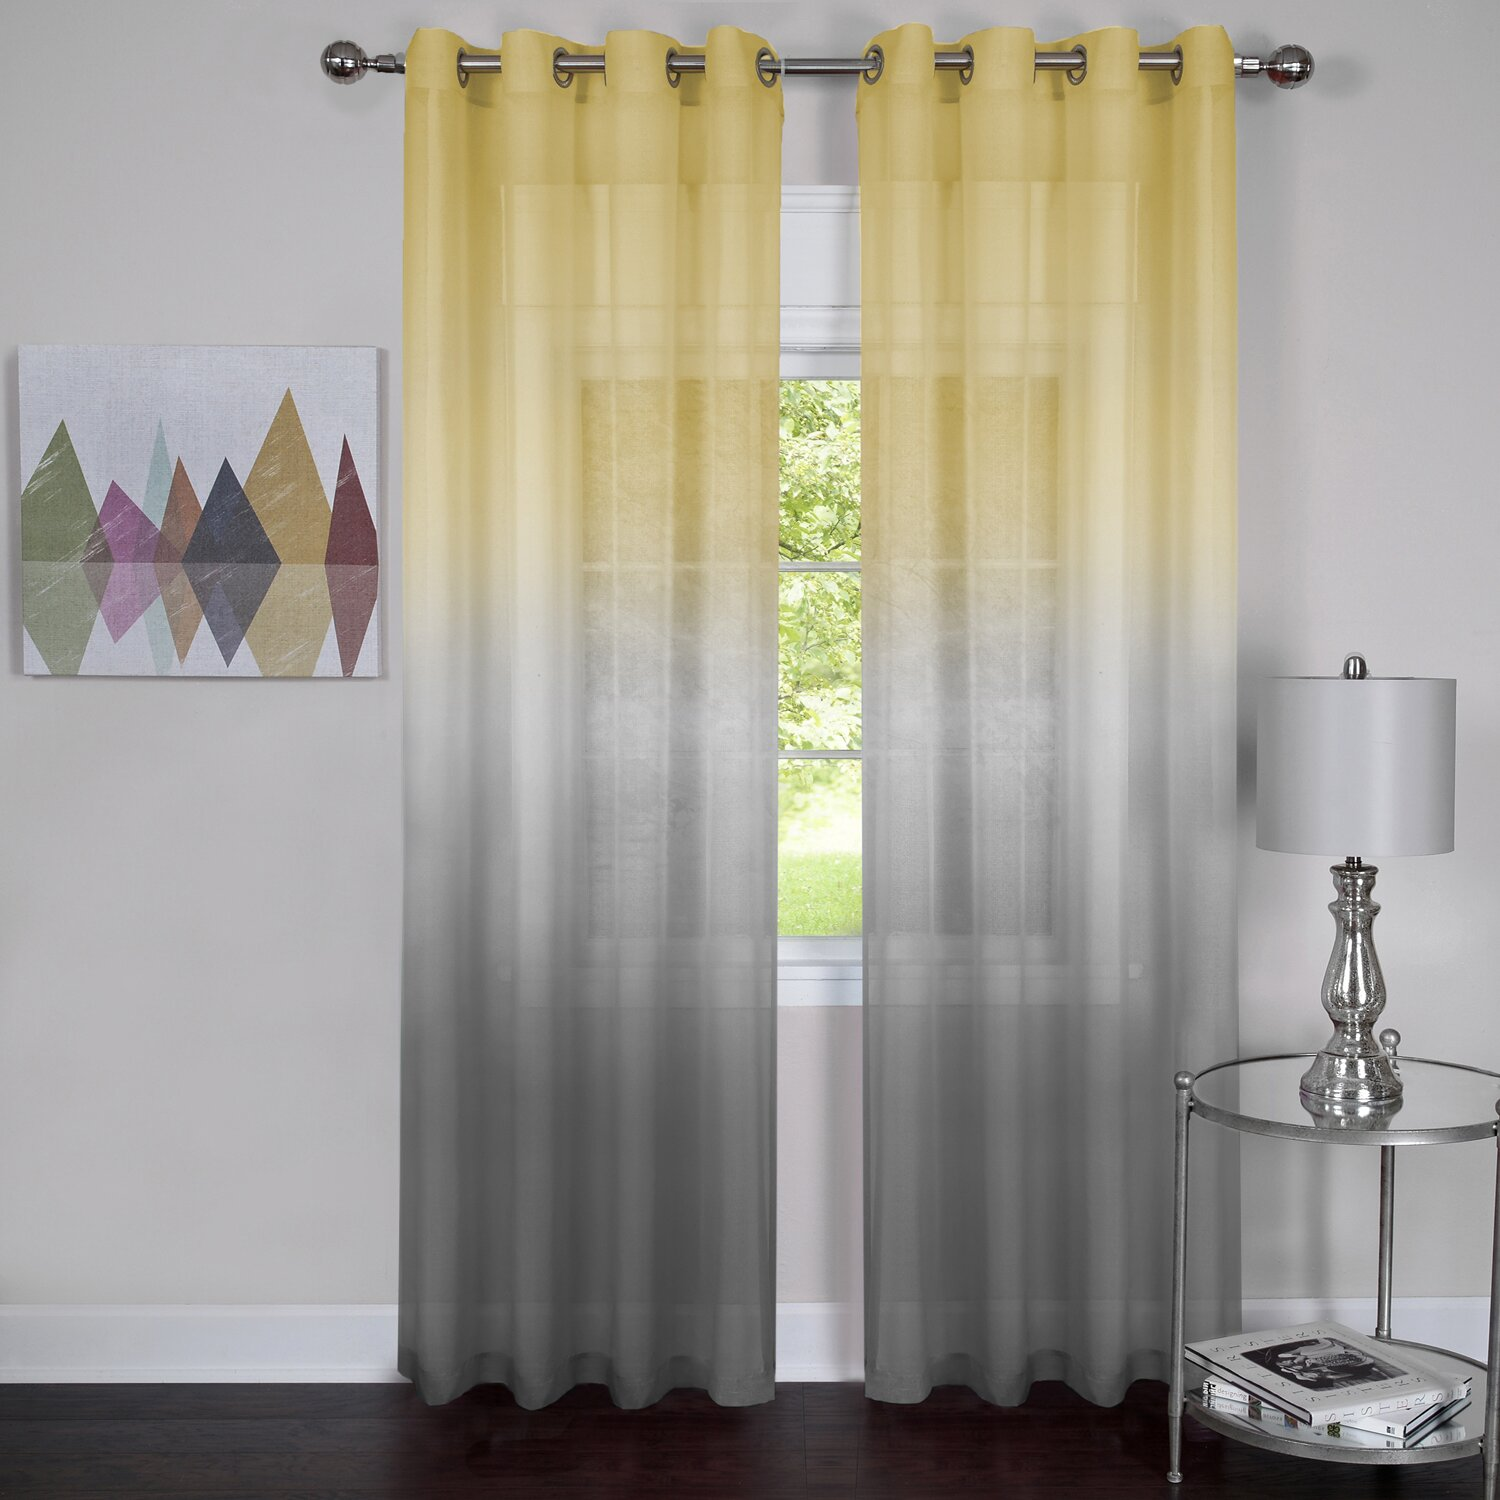 Achim Importing Co Rainbow Solid Sheer Curtain Panels Reviews